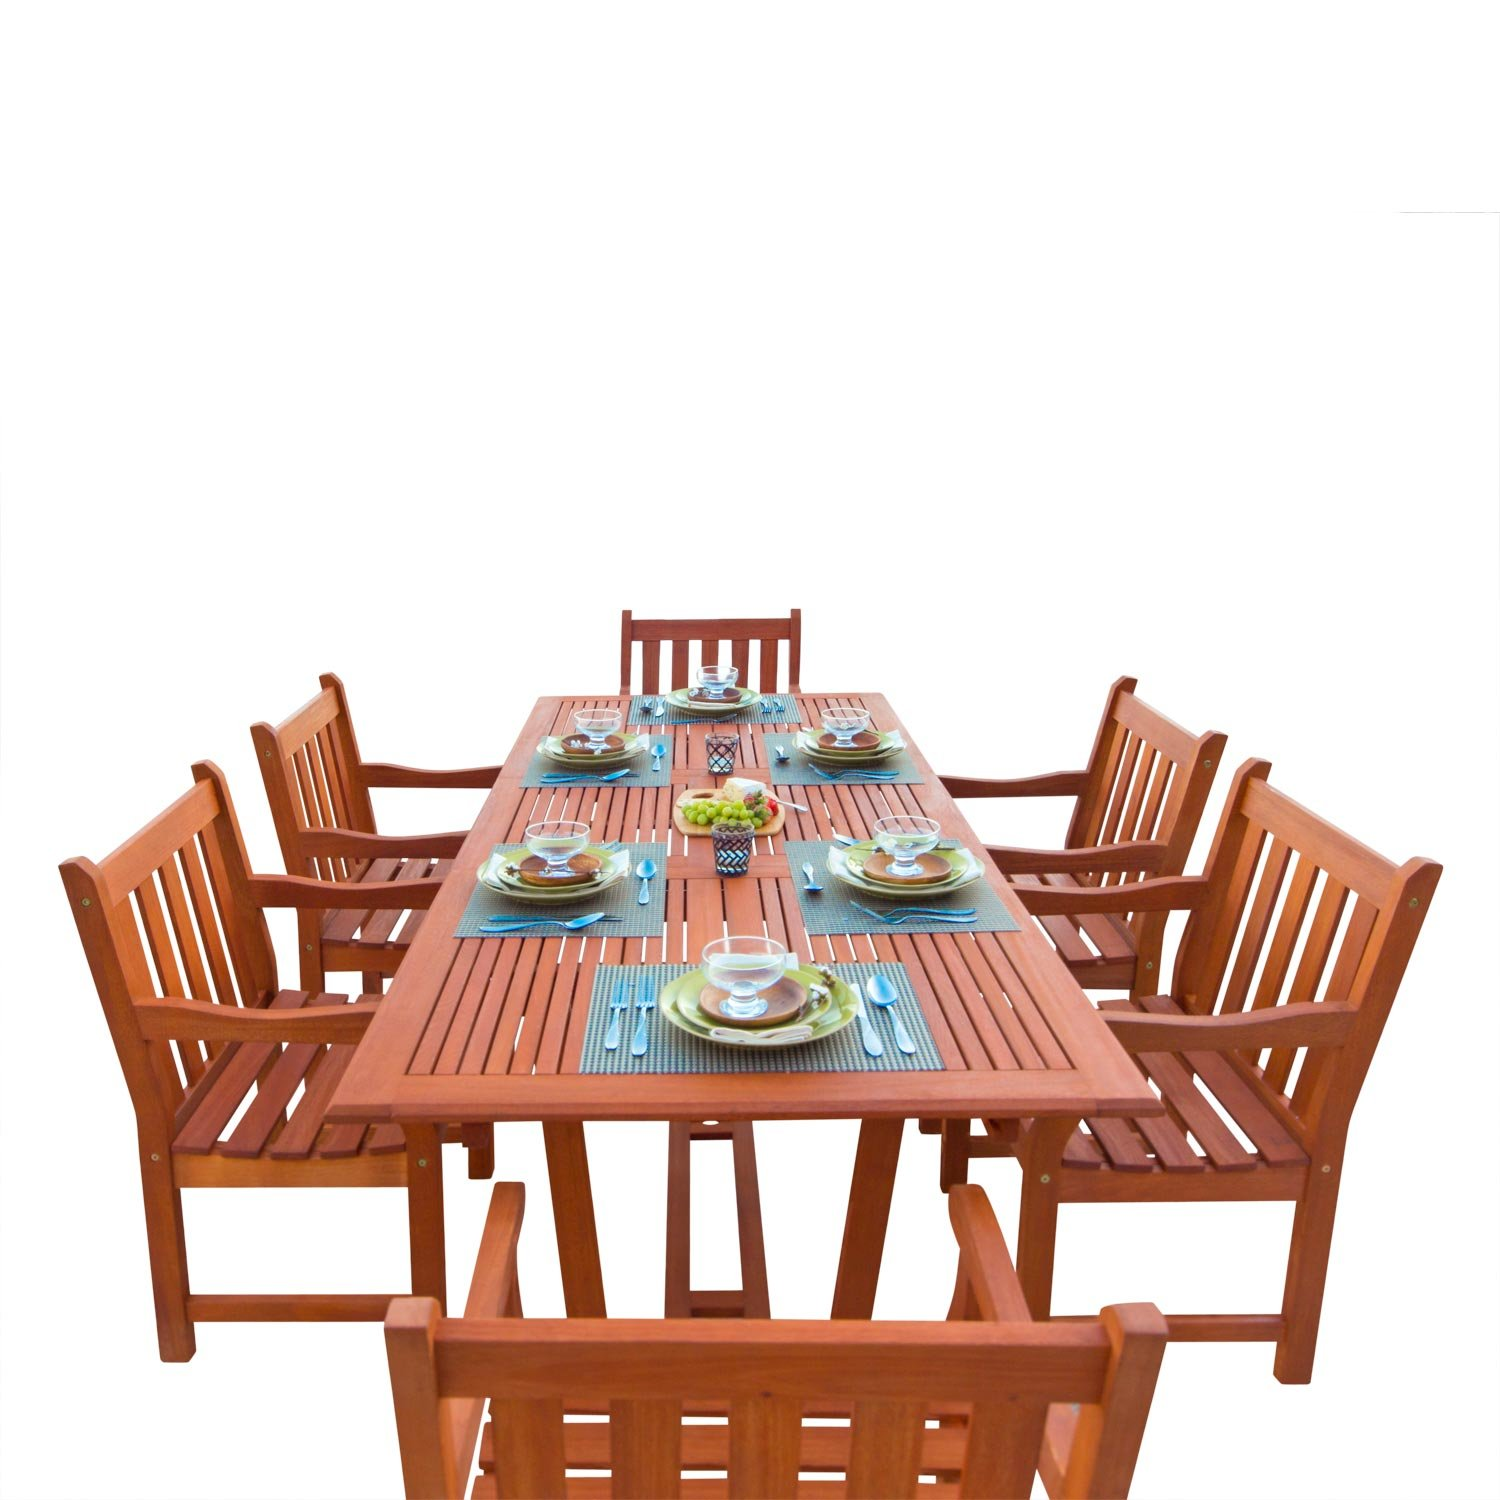 Amazon com vifah v232set1 english garden 7 piece dining set with rectangular extension table natural wood finish 91 by 39 by 29 inch garden outdoor